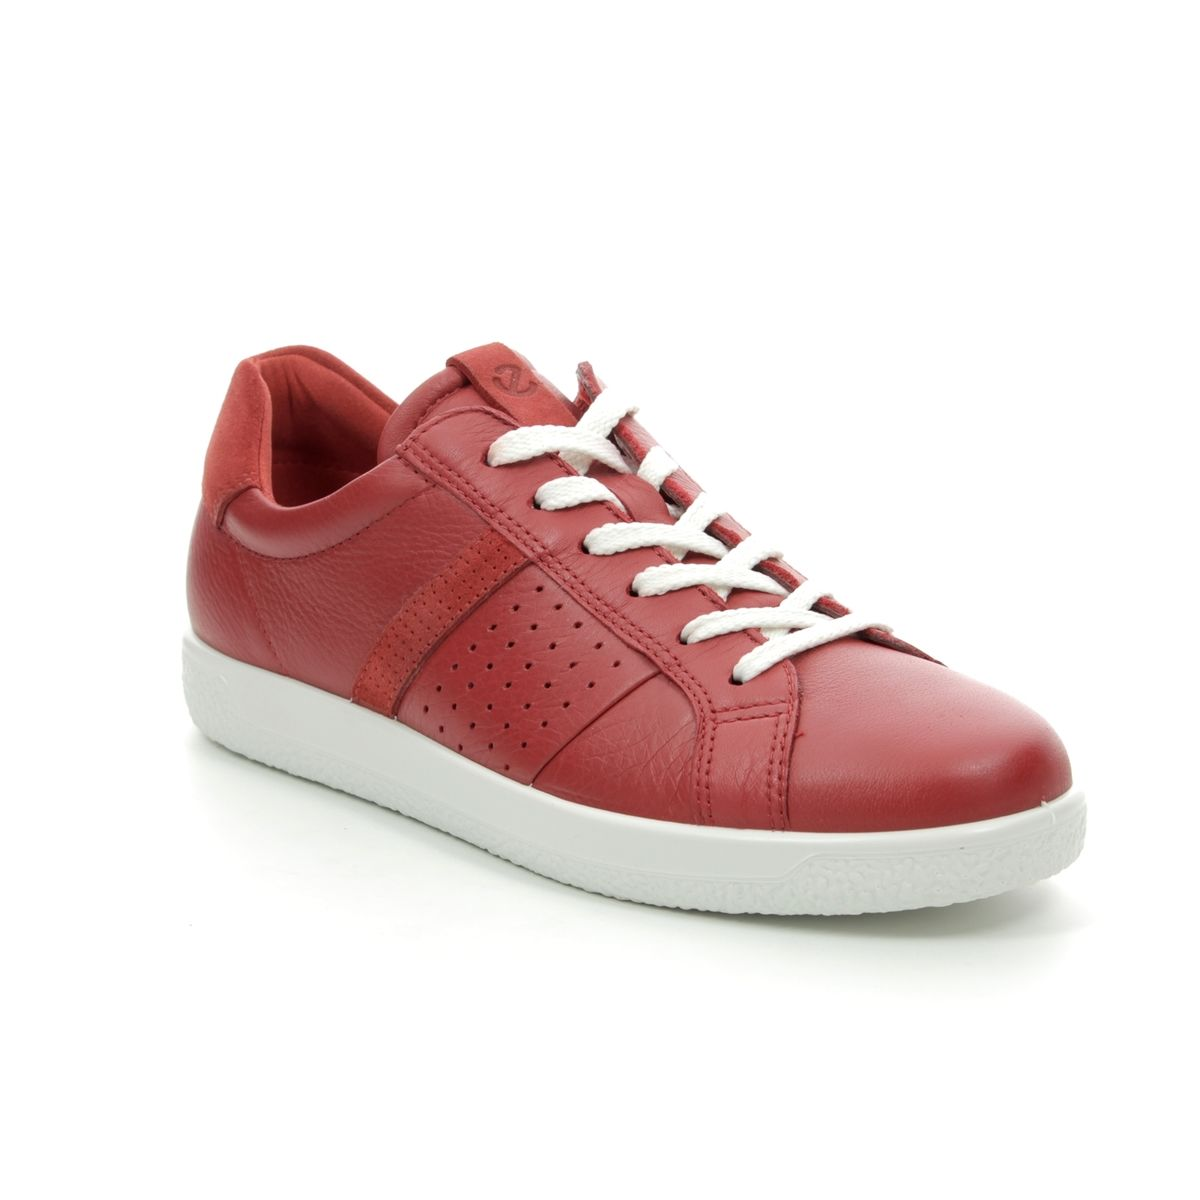 f976a2e7 400703/51389 Soft 1 Lady 91 at Begg Shoes & Bags